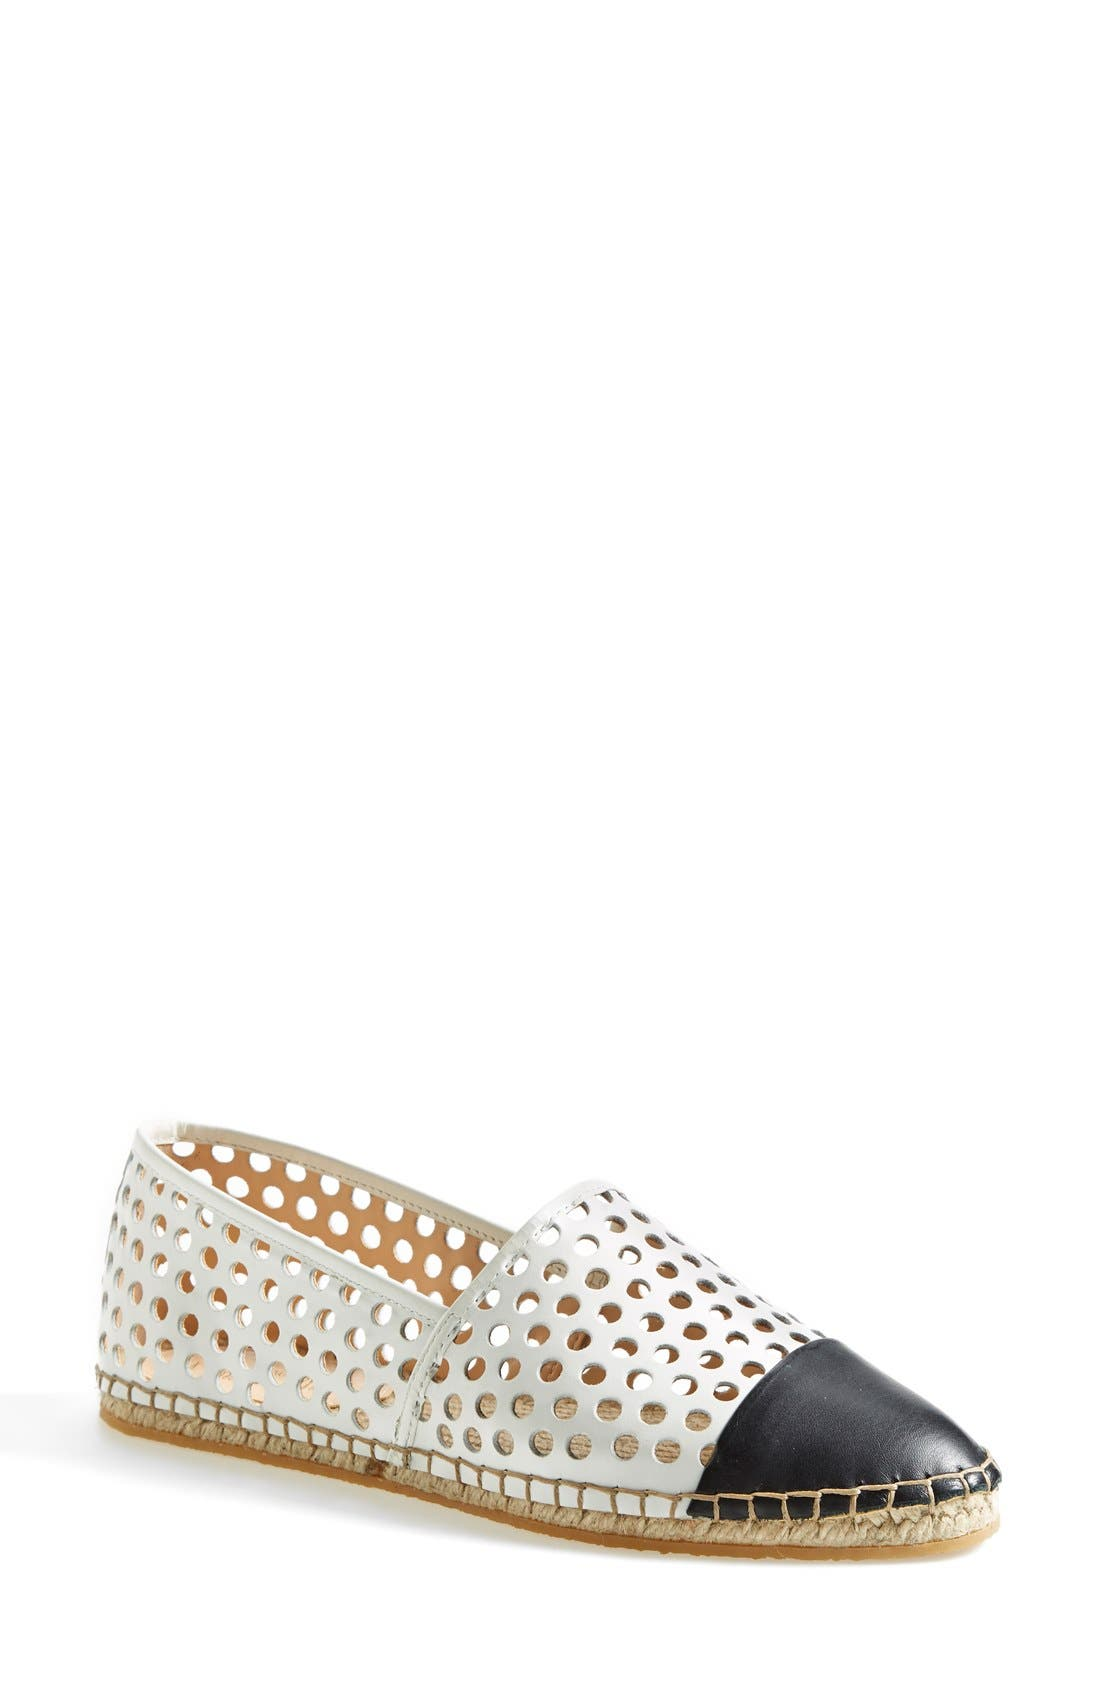 Alternate Image 1 Selected - Loeffler Randall 'Mara' Espadrille Flat (Women)